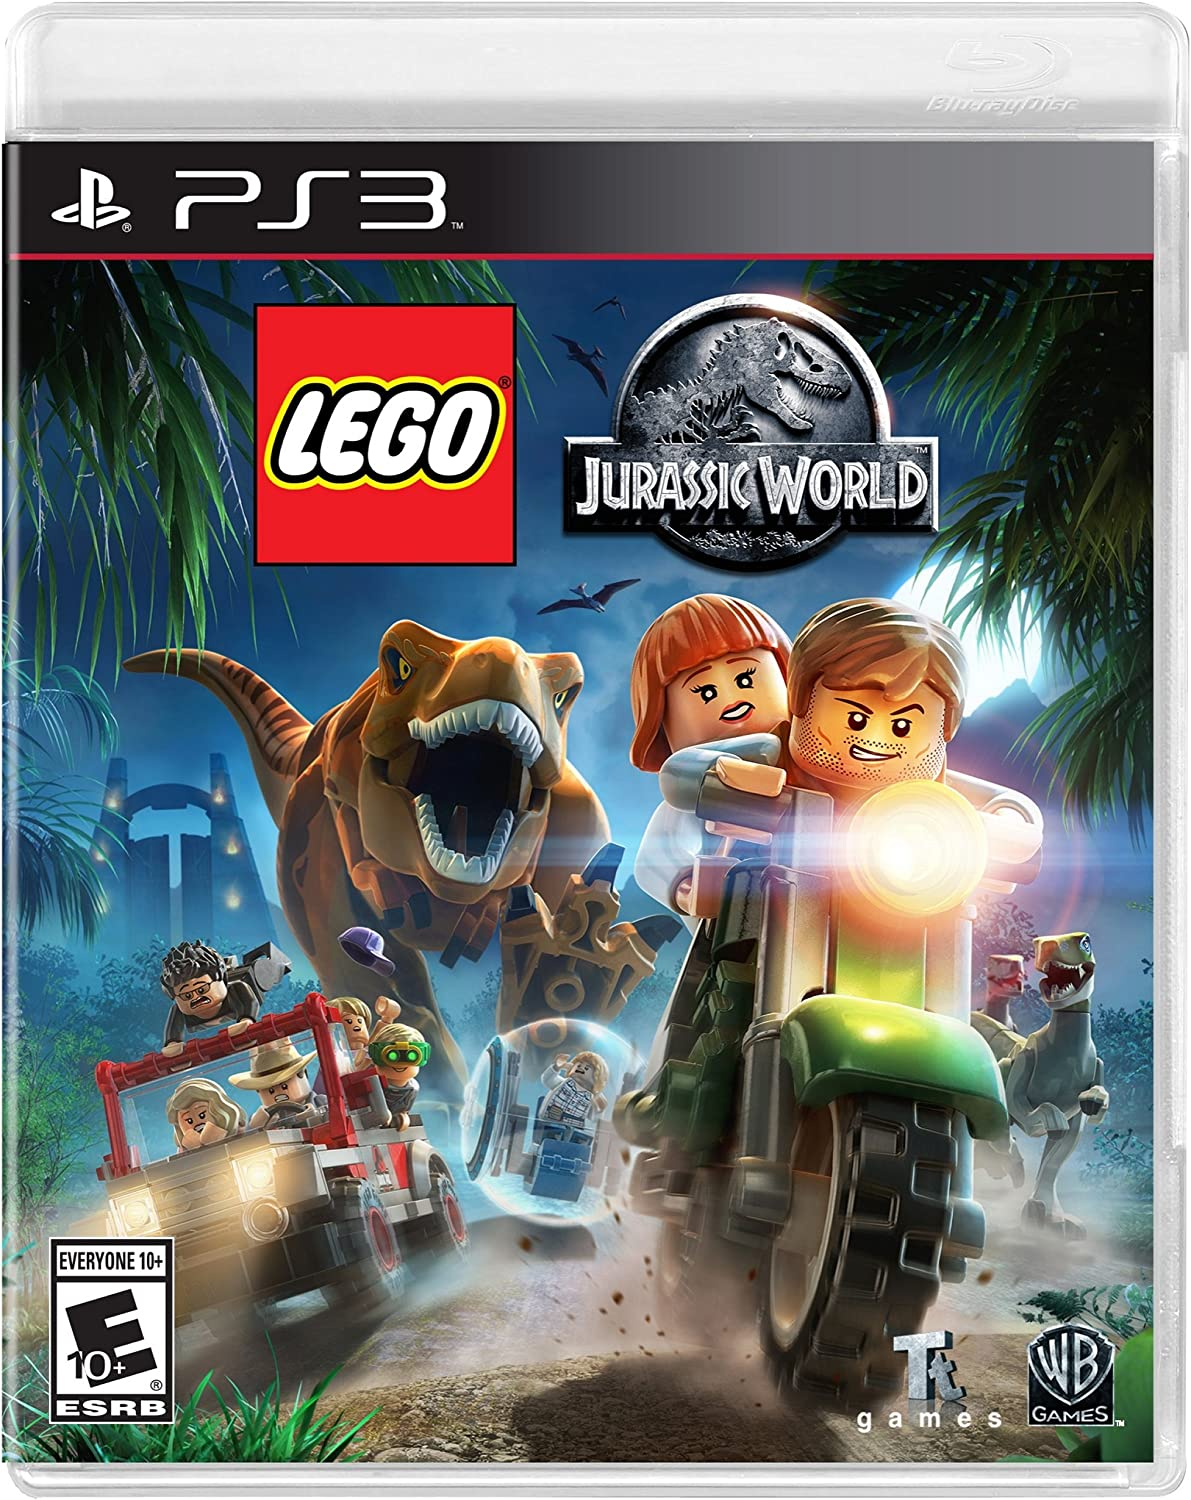 Amazon lego jurassic world playstation 3 whv games video games gumiabroncs Choice Image